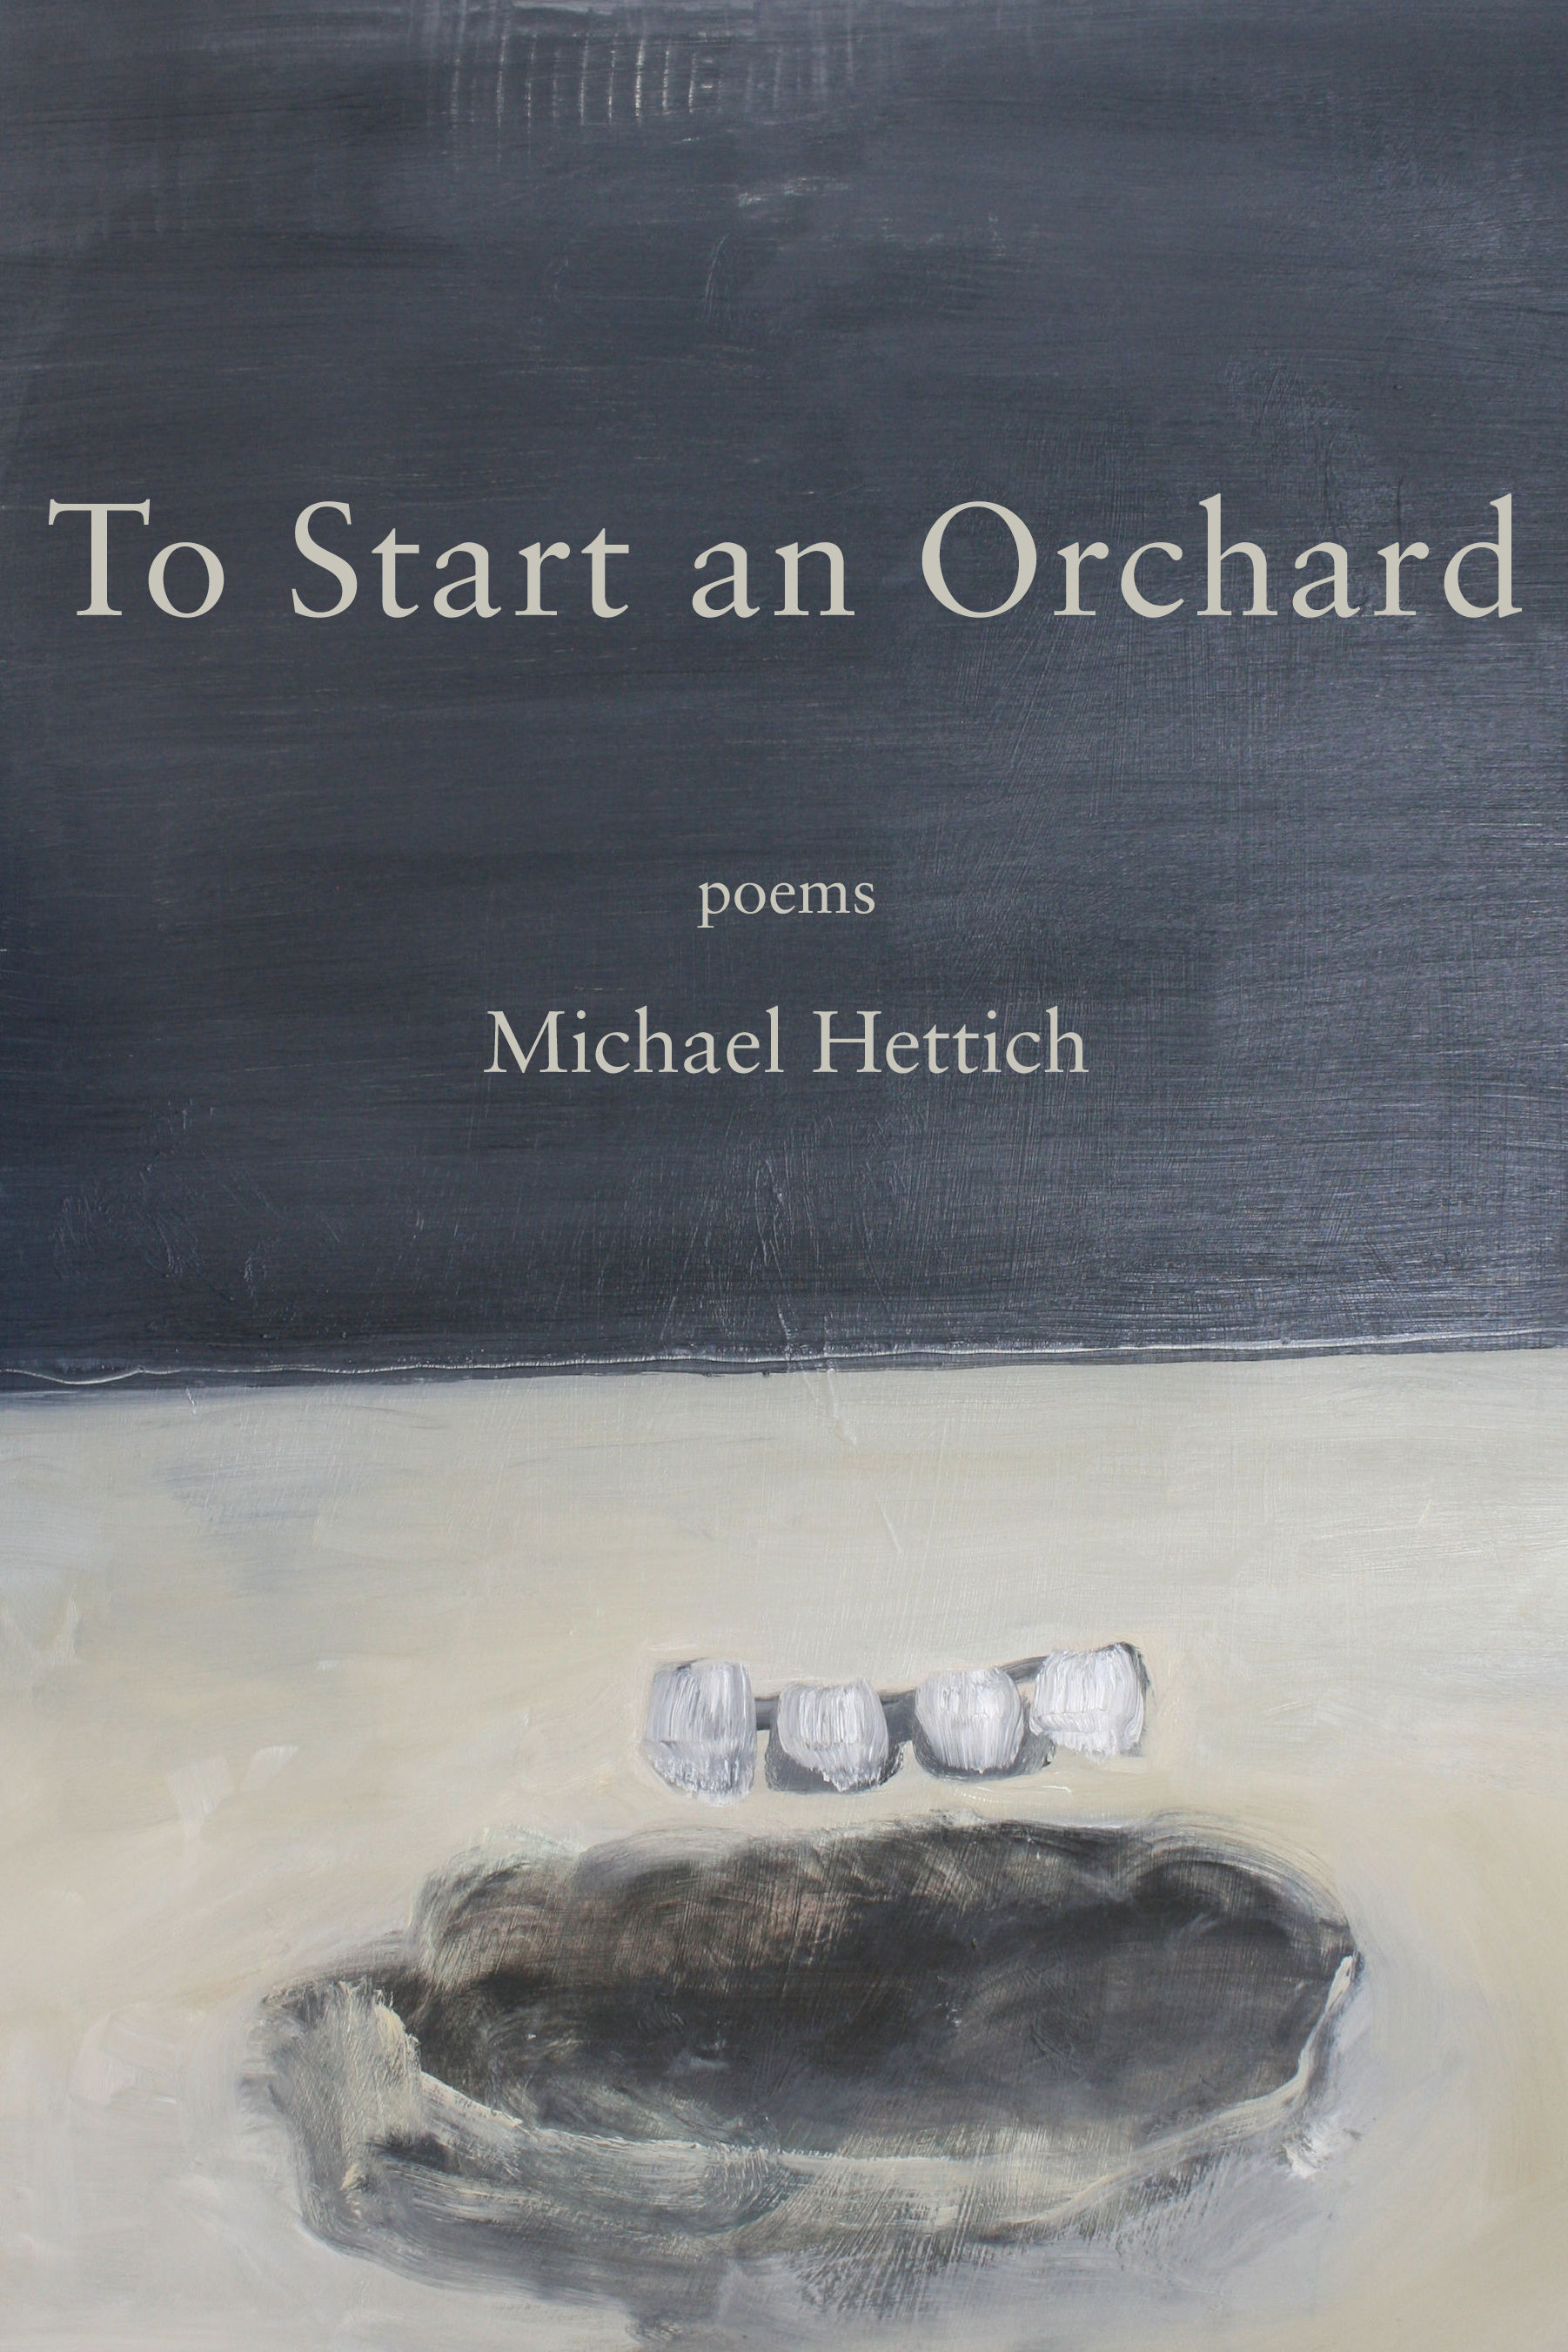 To Start an Orchard by Michael Hettich.jpg